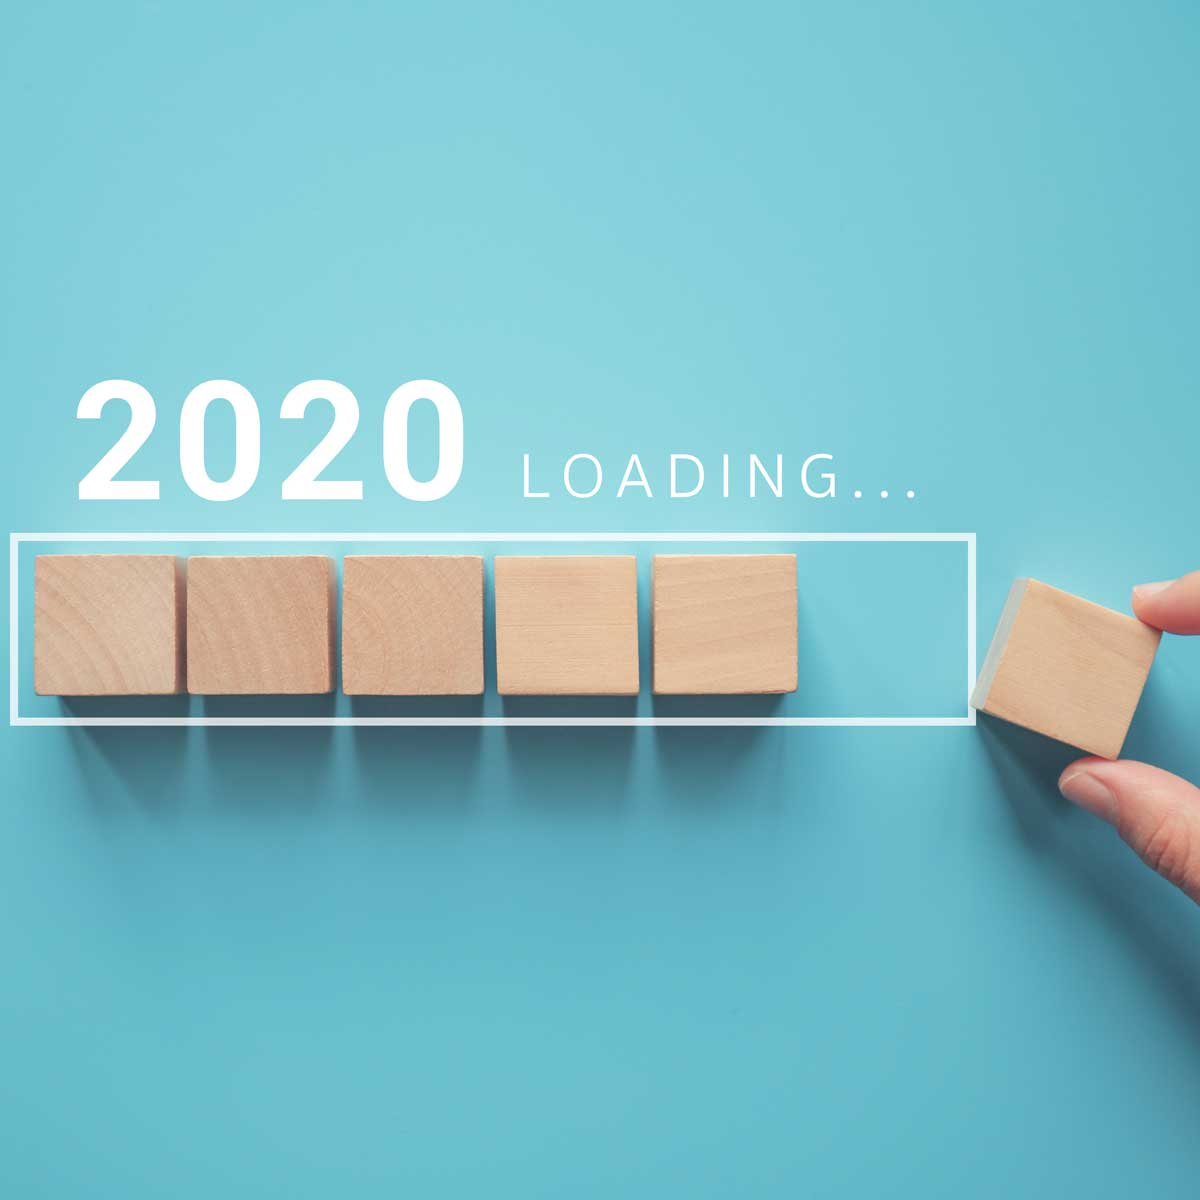 Loading new year 2020 with hand putting wood cube in progress bar.